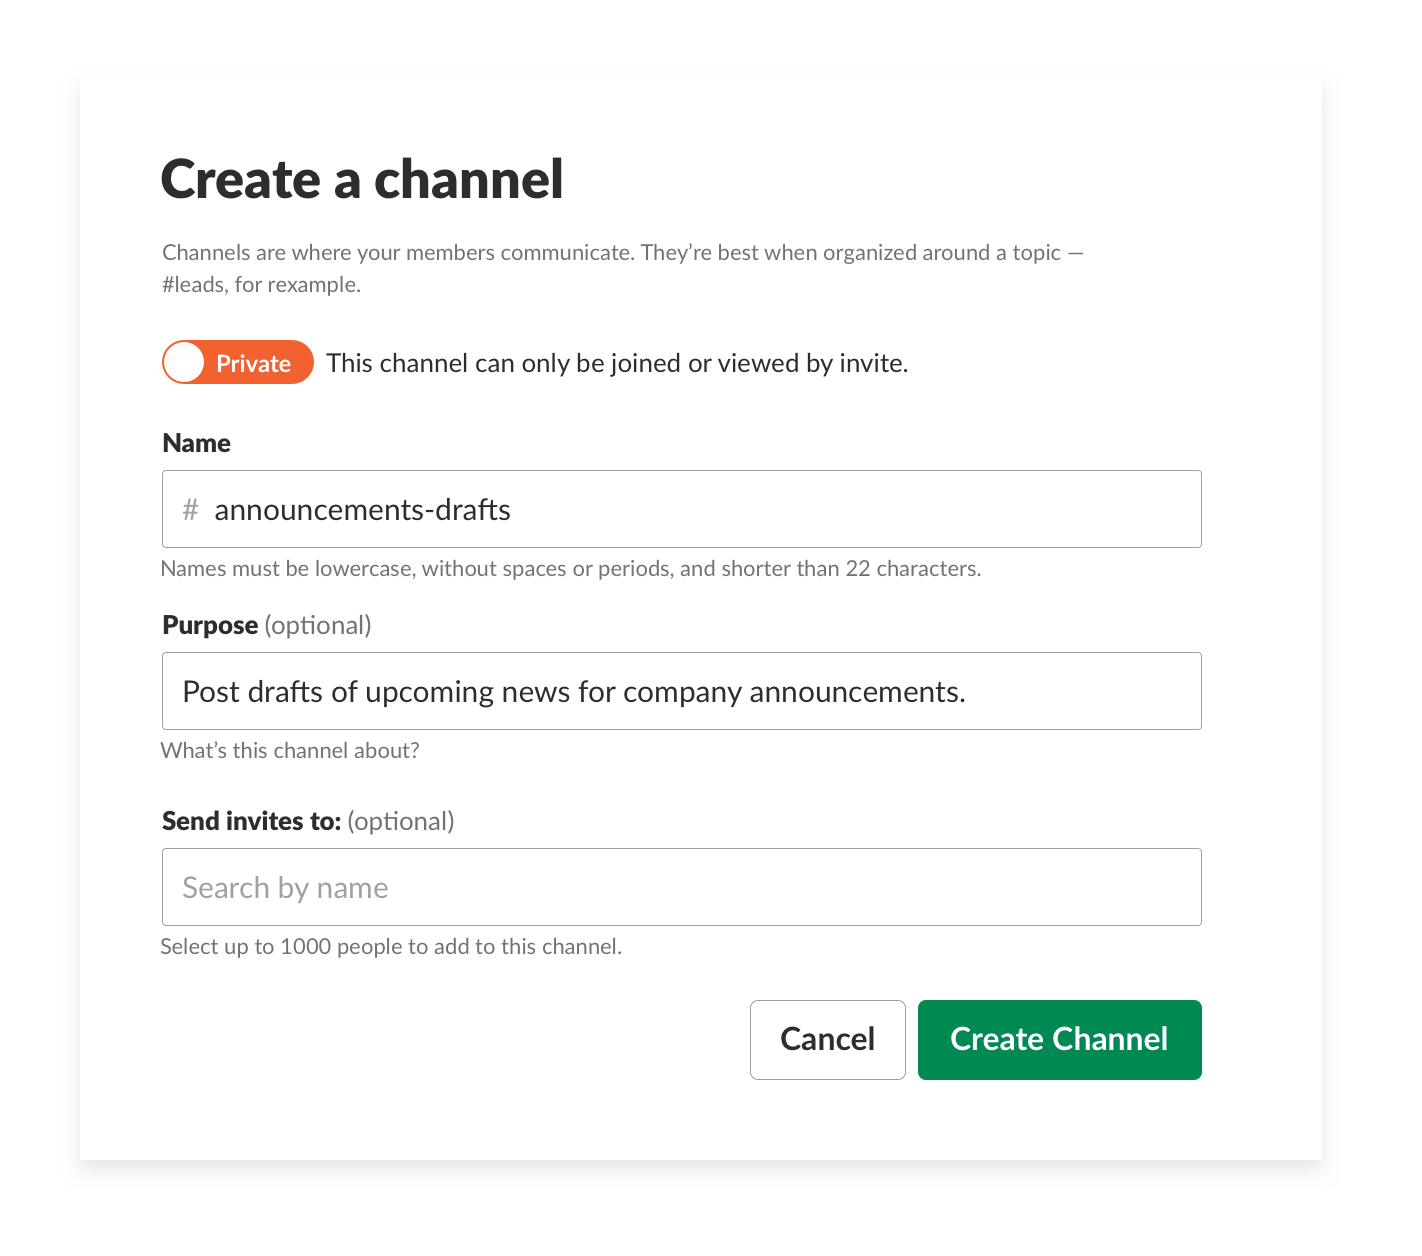 Company-wide announcements in channel